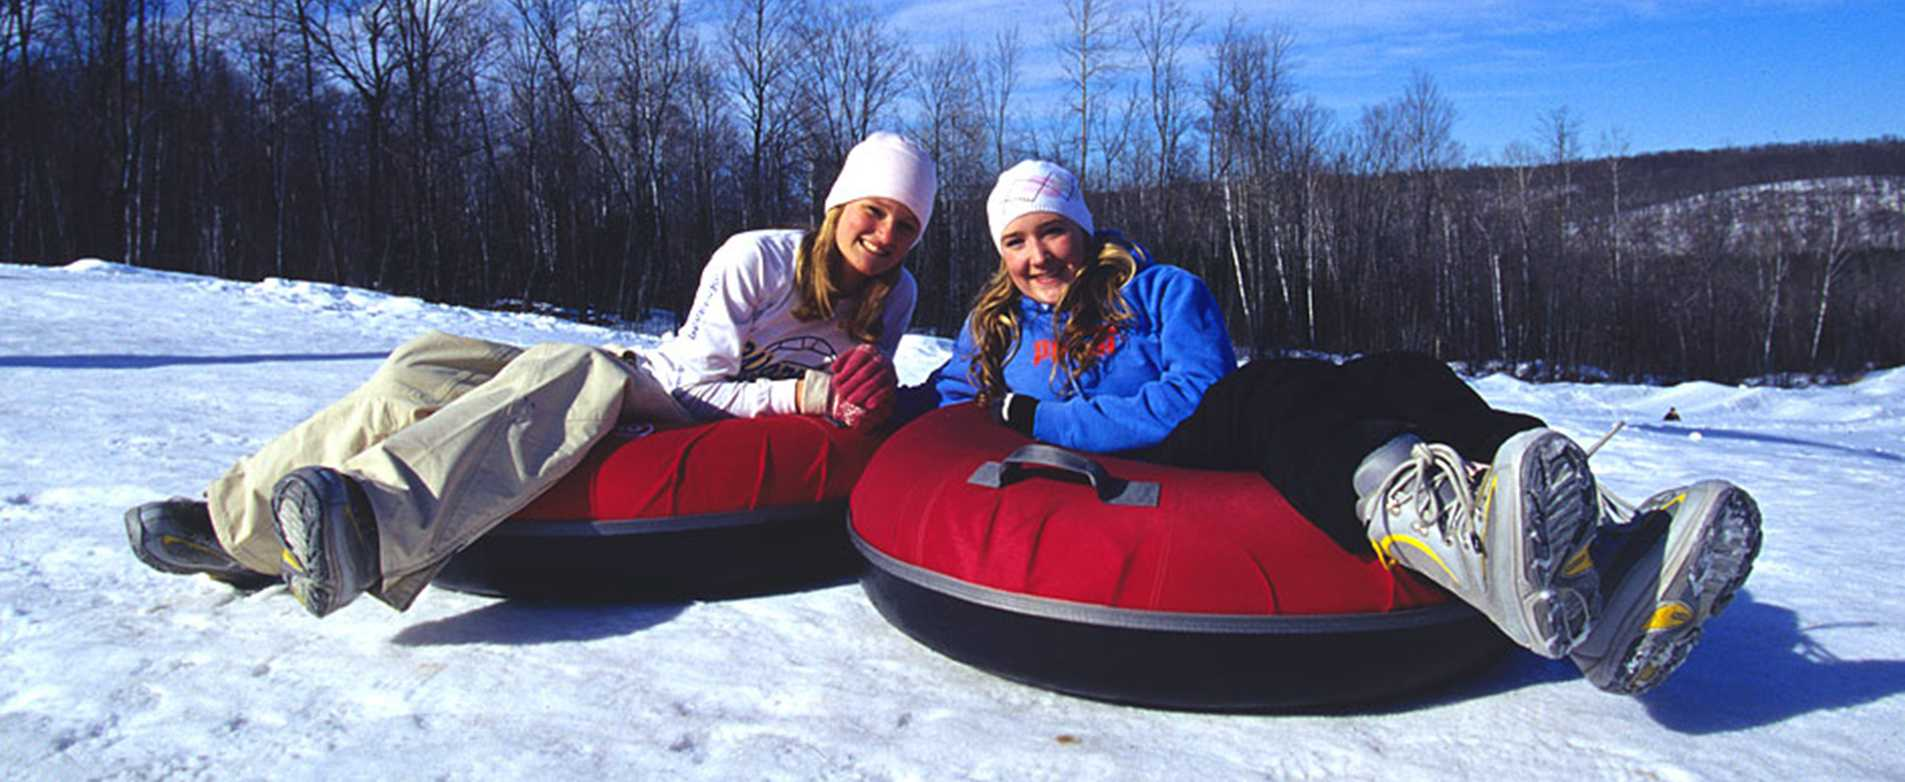 Christie Mountain Snowtubing